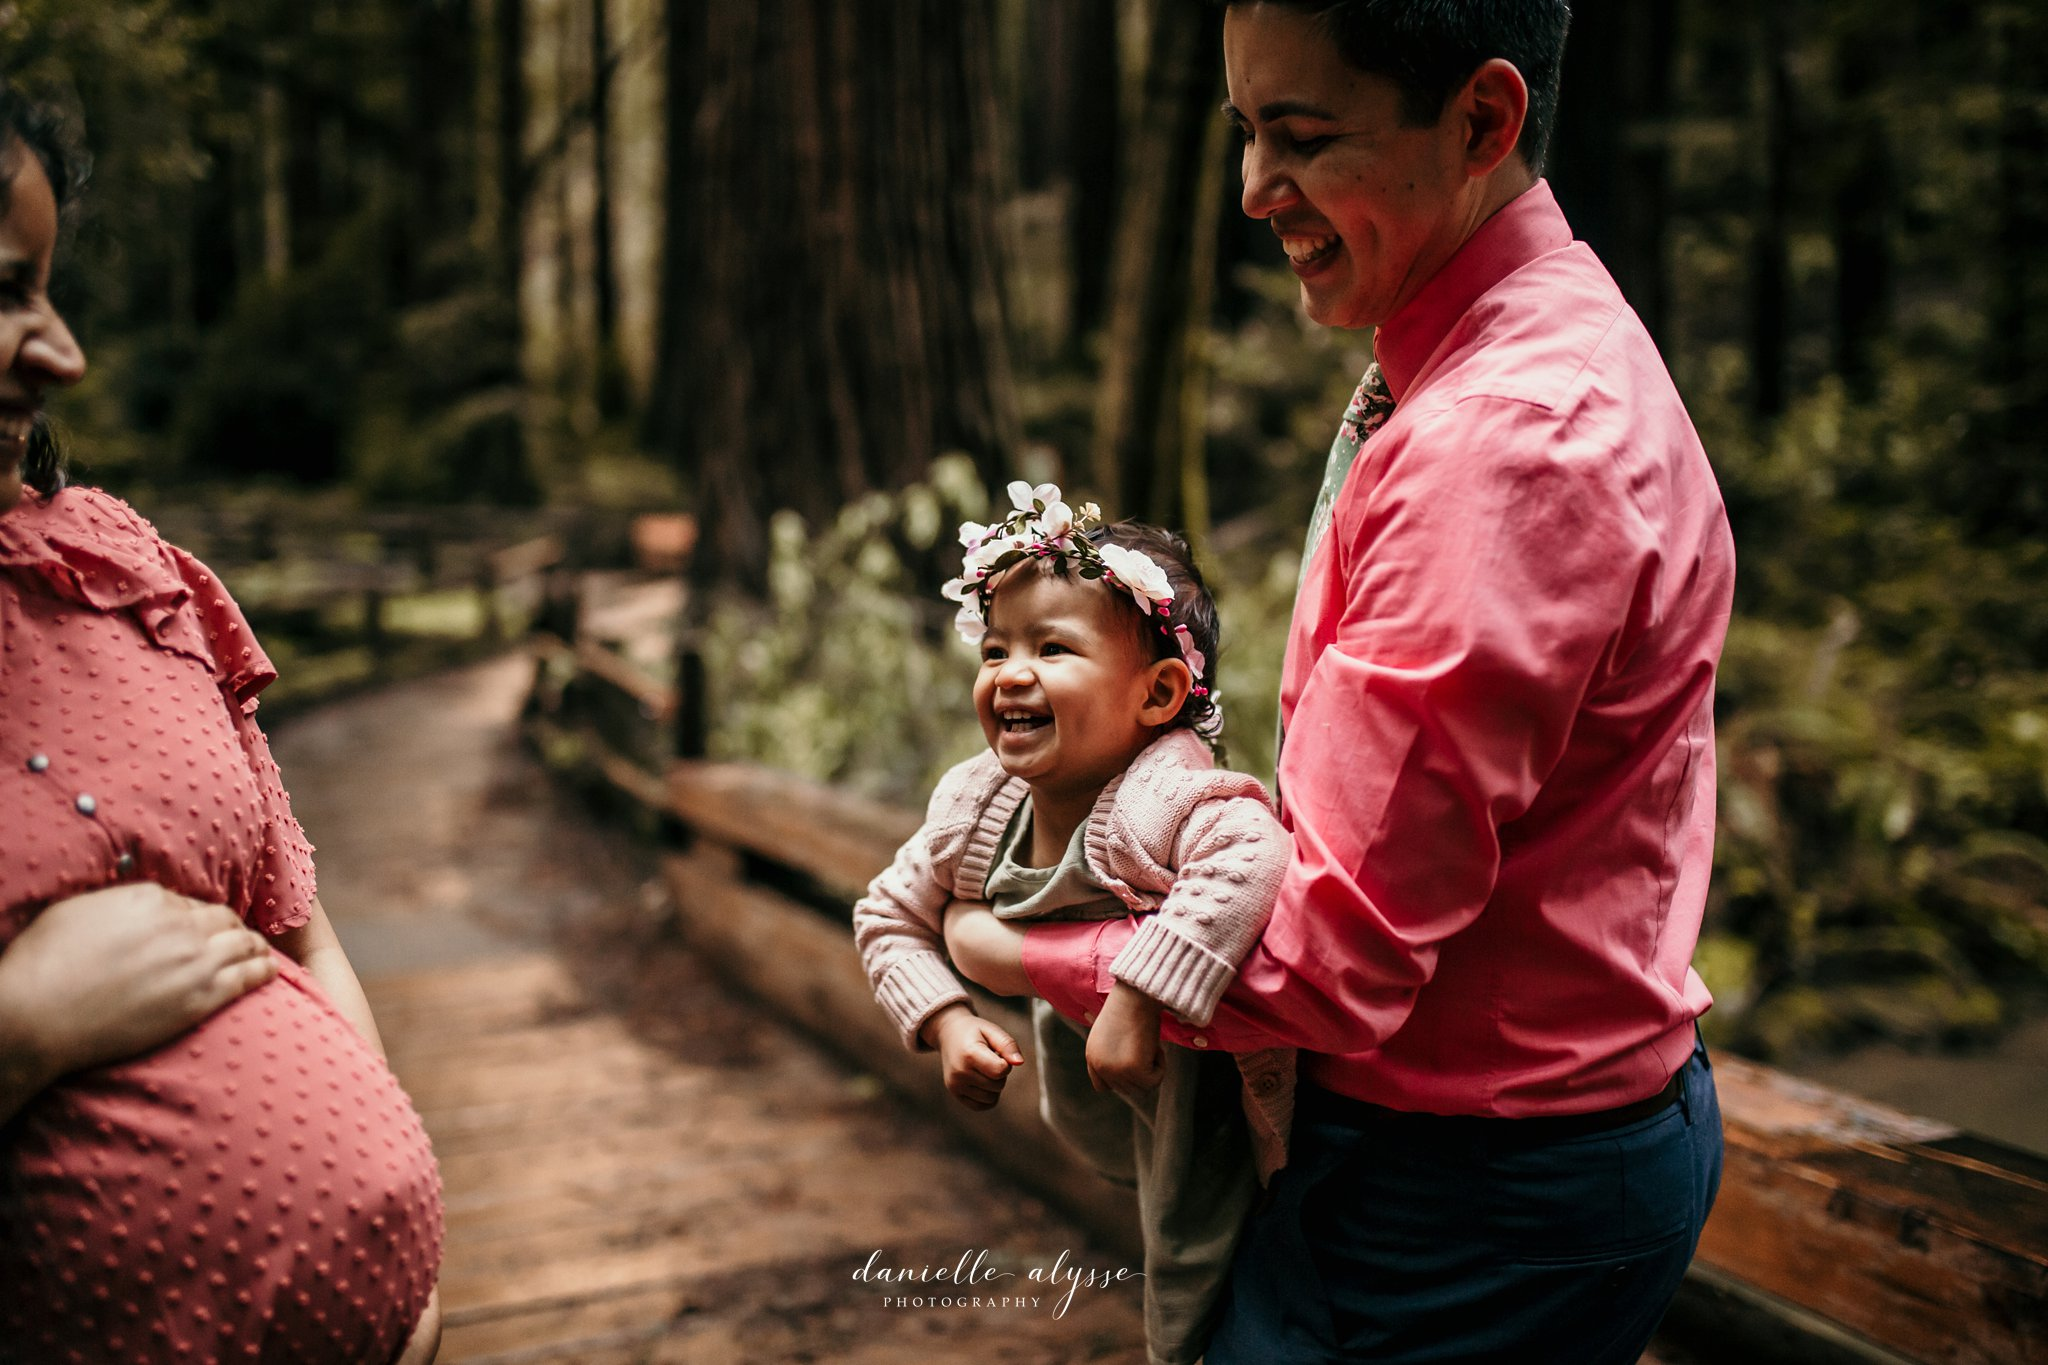 190216_maternity_india_family_muir_woods_bay_danielle_alysse_photography_25_WEB.jpg